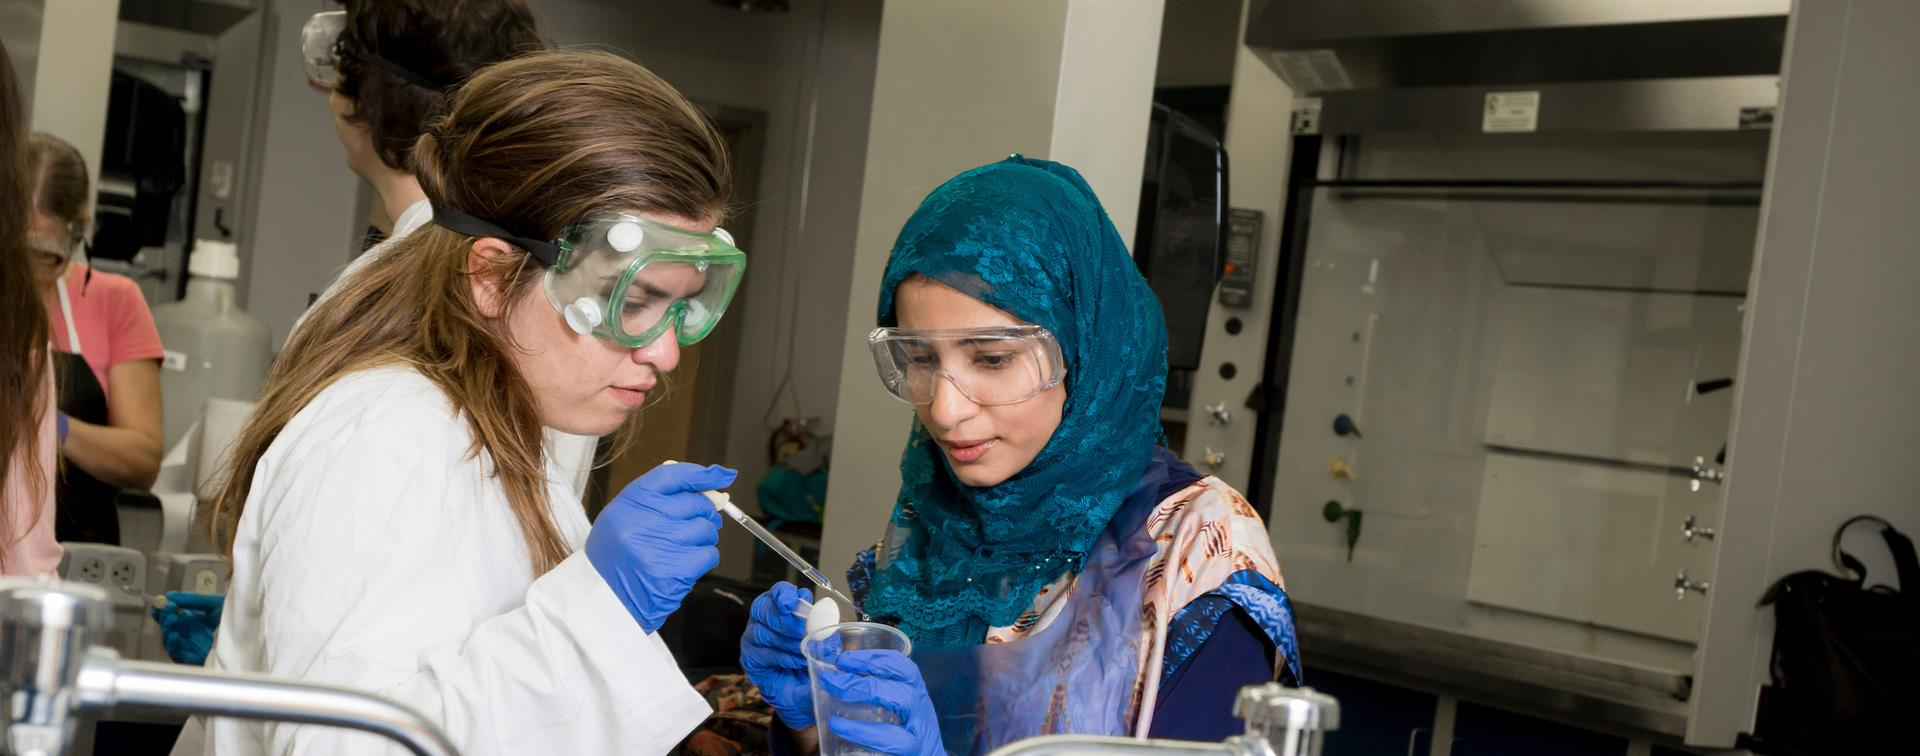 A picture of two women in a lab running an experiment